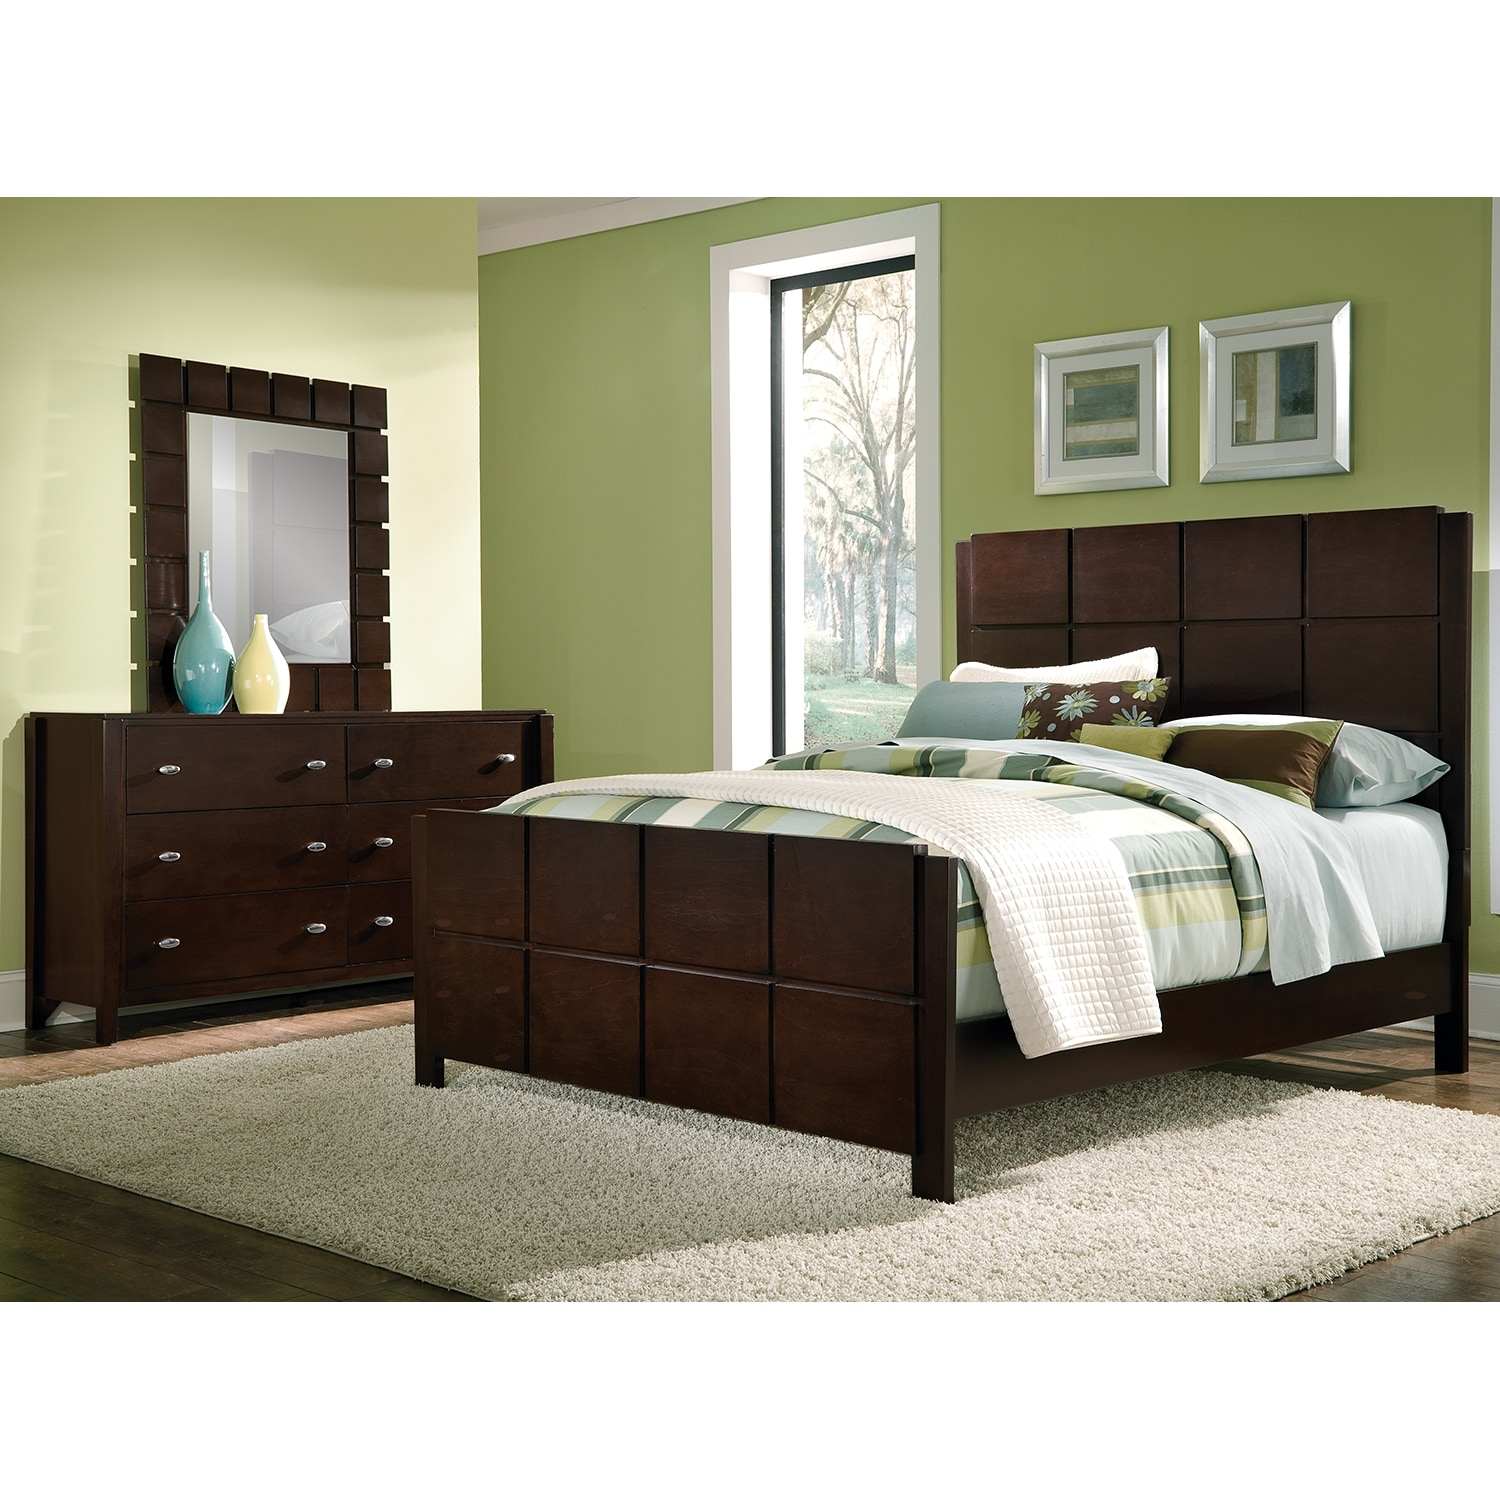 Value City Bedroom Sets